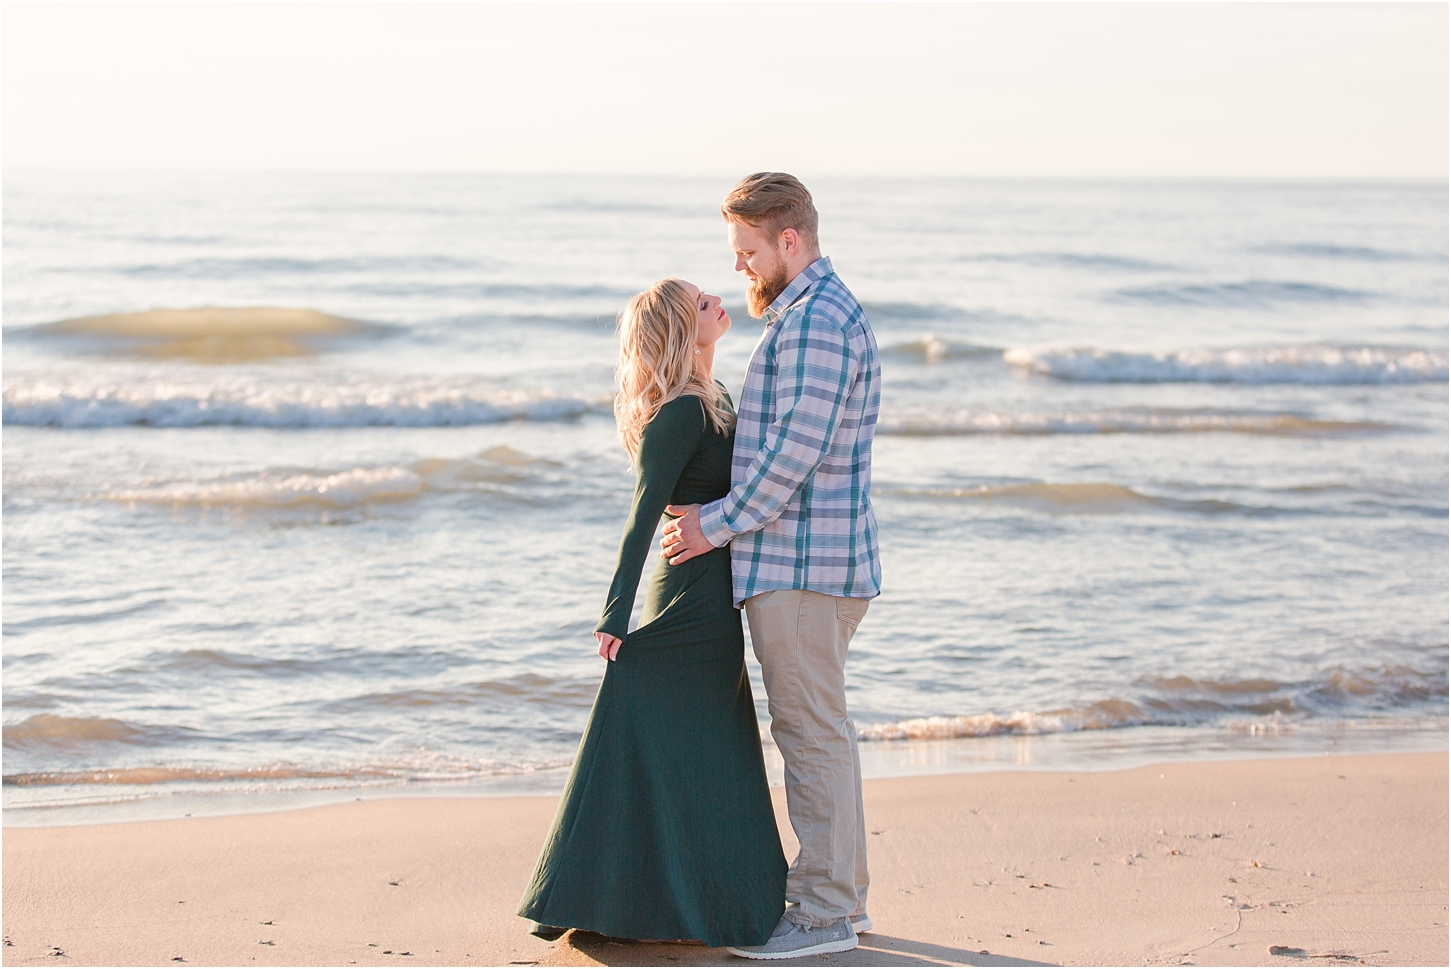 romantic-sunset-beach-engagement-photos-at-silver-beach-in-saint-joseph-mi-by-courtney-carolyn-photography_0017.jpg